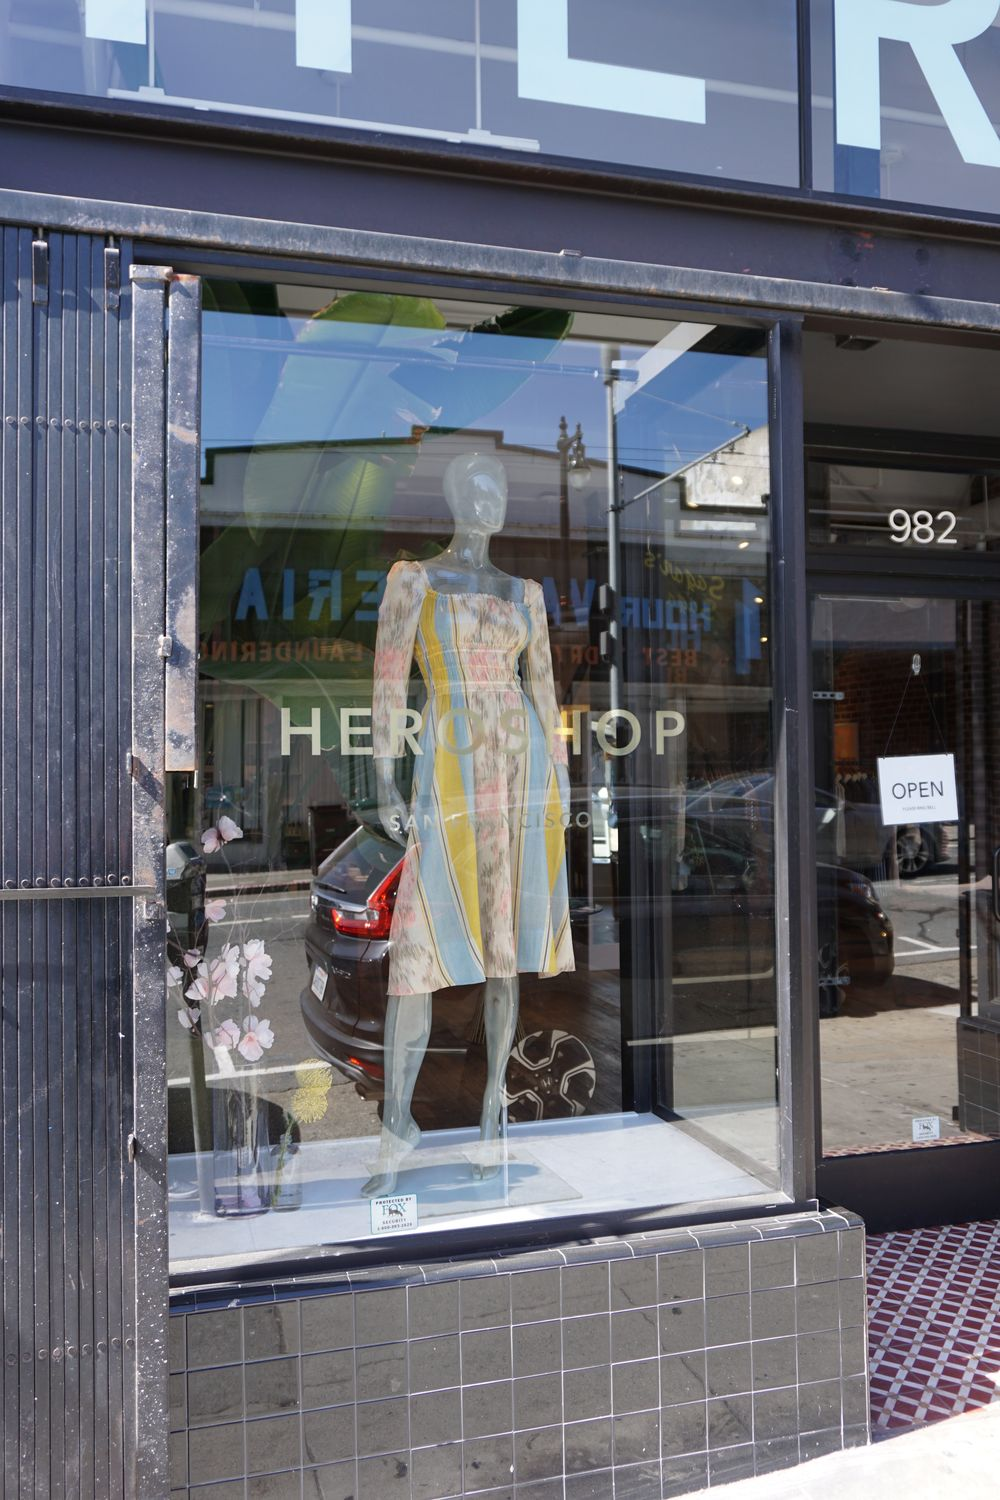 Dressing while Expecting: Hero Shop SF